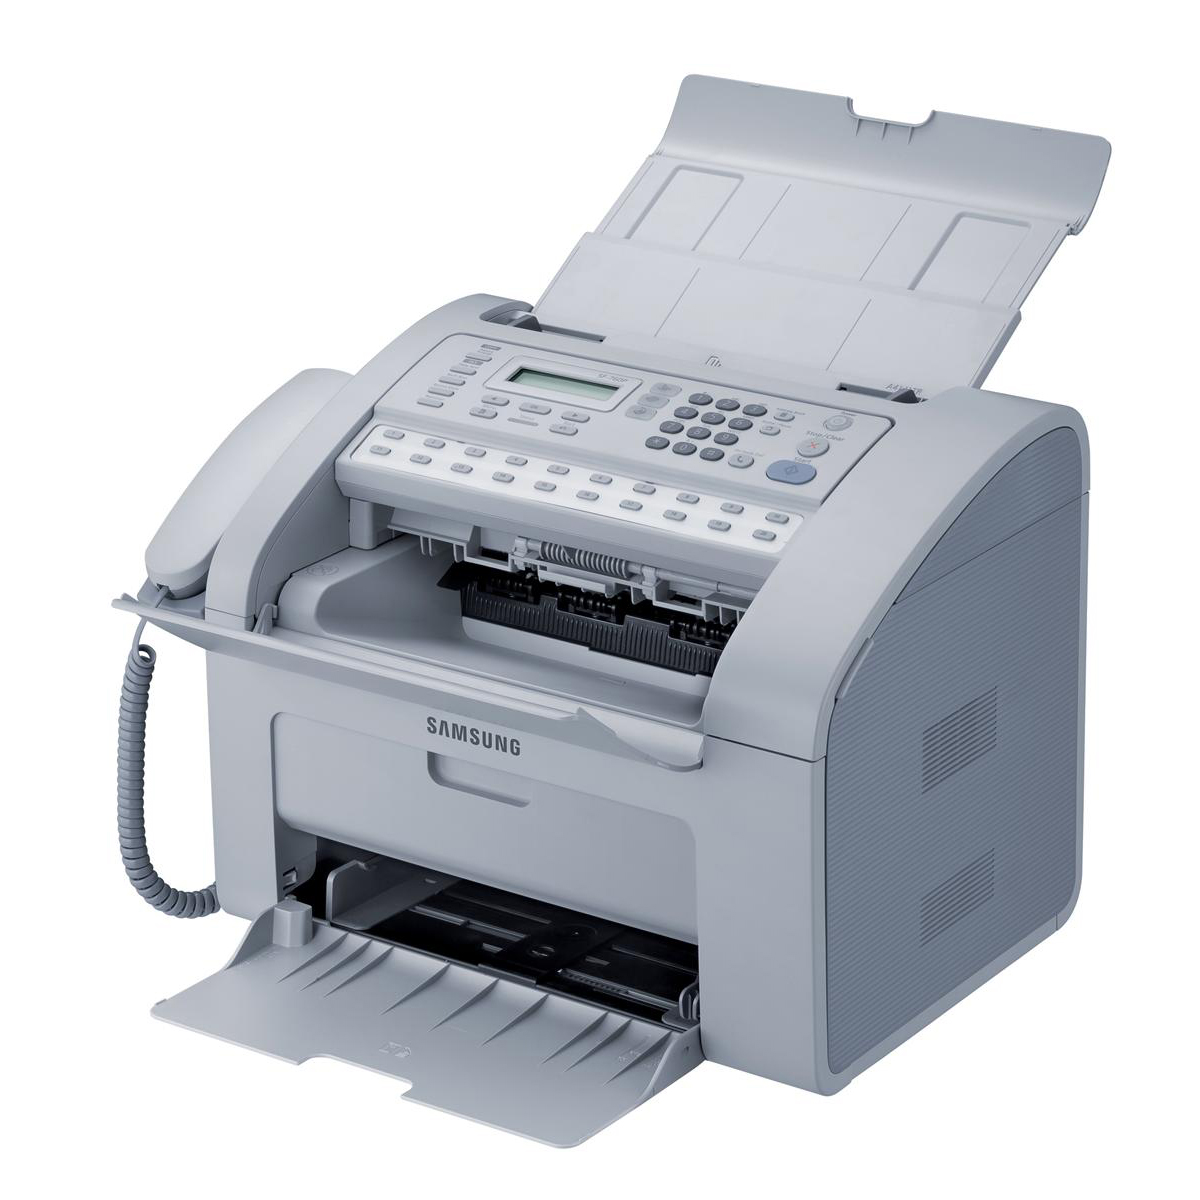 Image for Samsung SF-760P Mono Multifunction Laser Printer 1200x1200dpi A4 Ref SF-760P